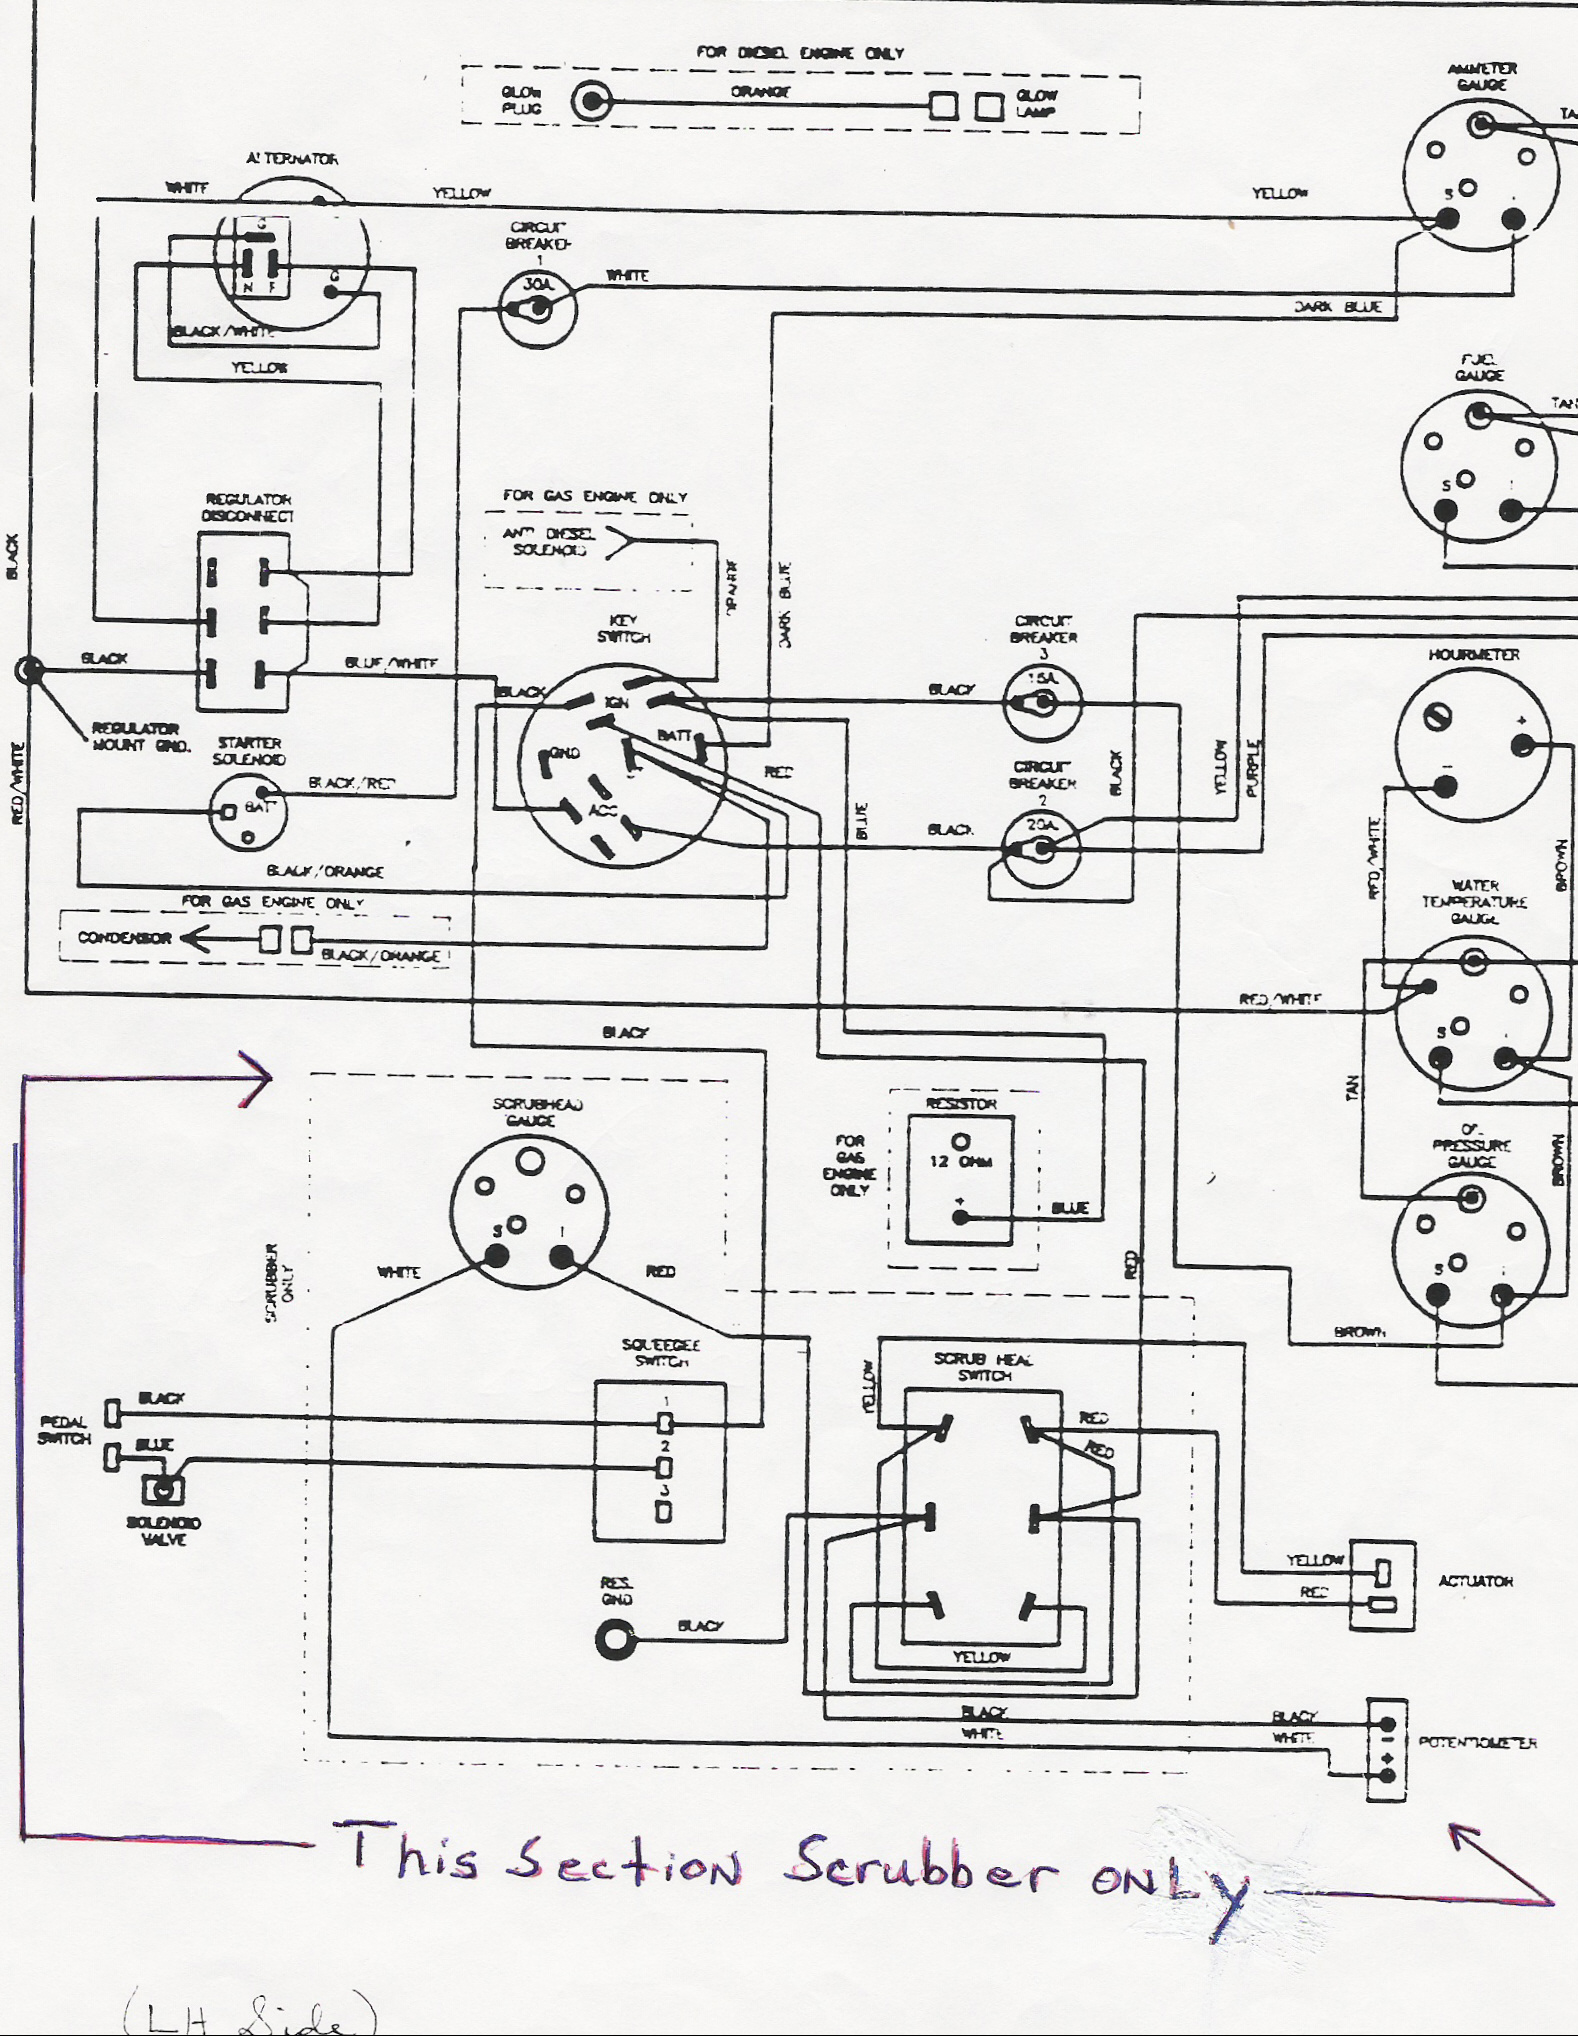 Directory Listing Of Powerboss Engines Toyota Toyota 4p Wiring Diagrams 8xv Unit